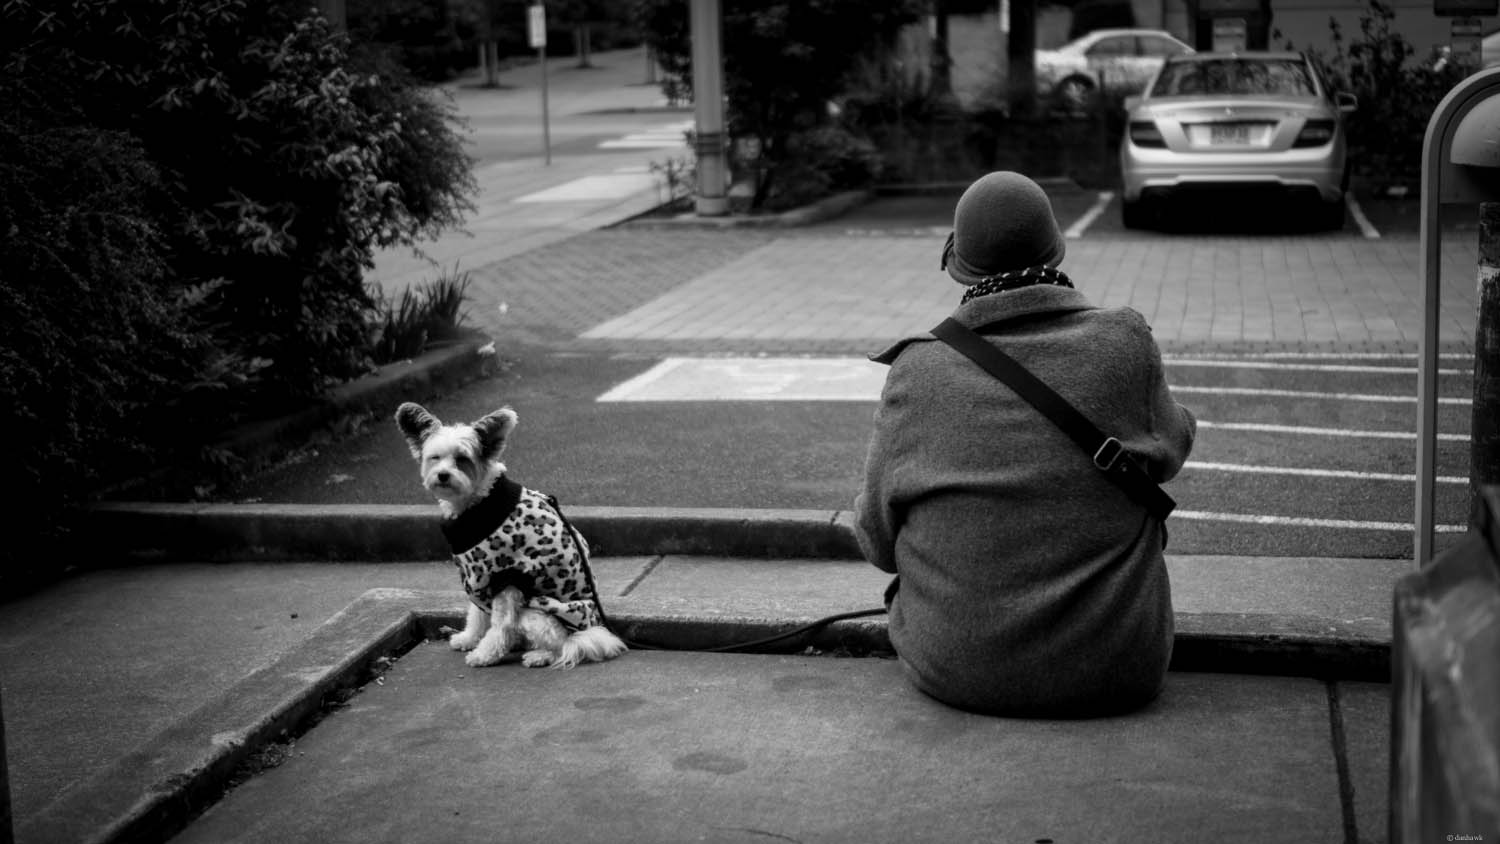 Woman and Dog | 365 Project | March 21st, 2013 | 35mm, f/1.8, ISO 100, 1/1250